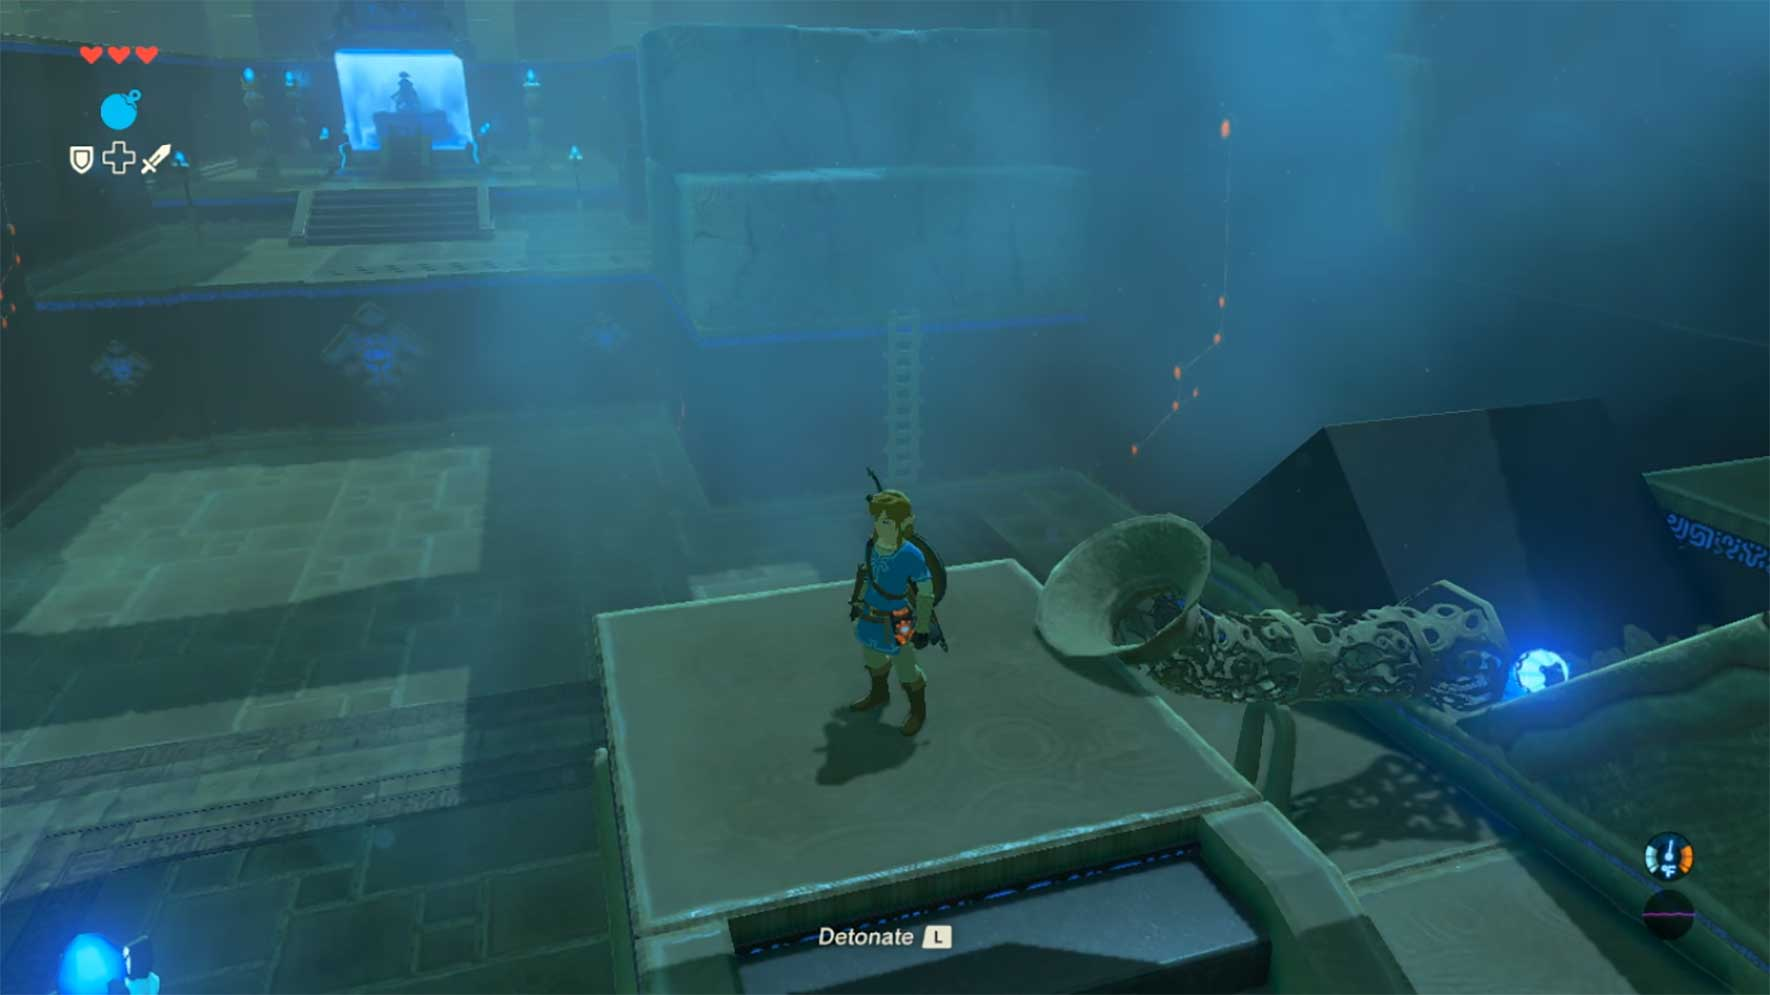 guide-botw-ch5-004